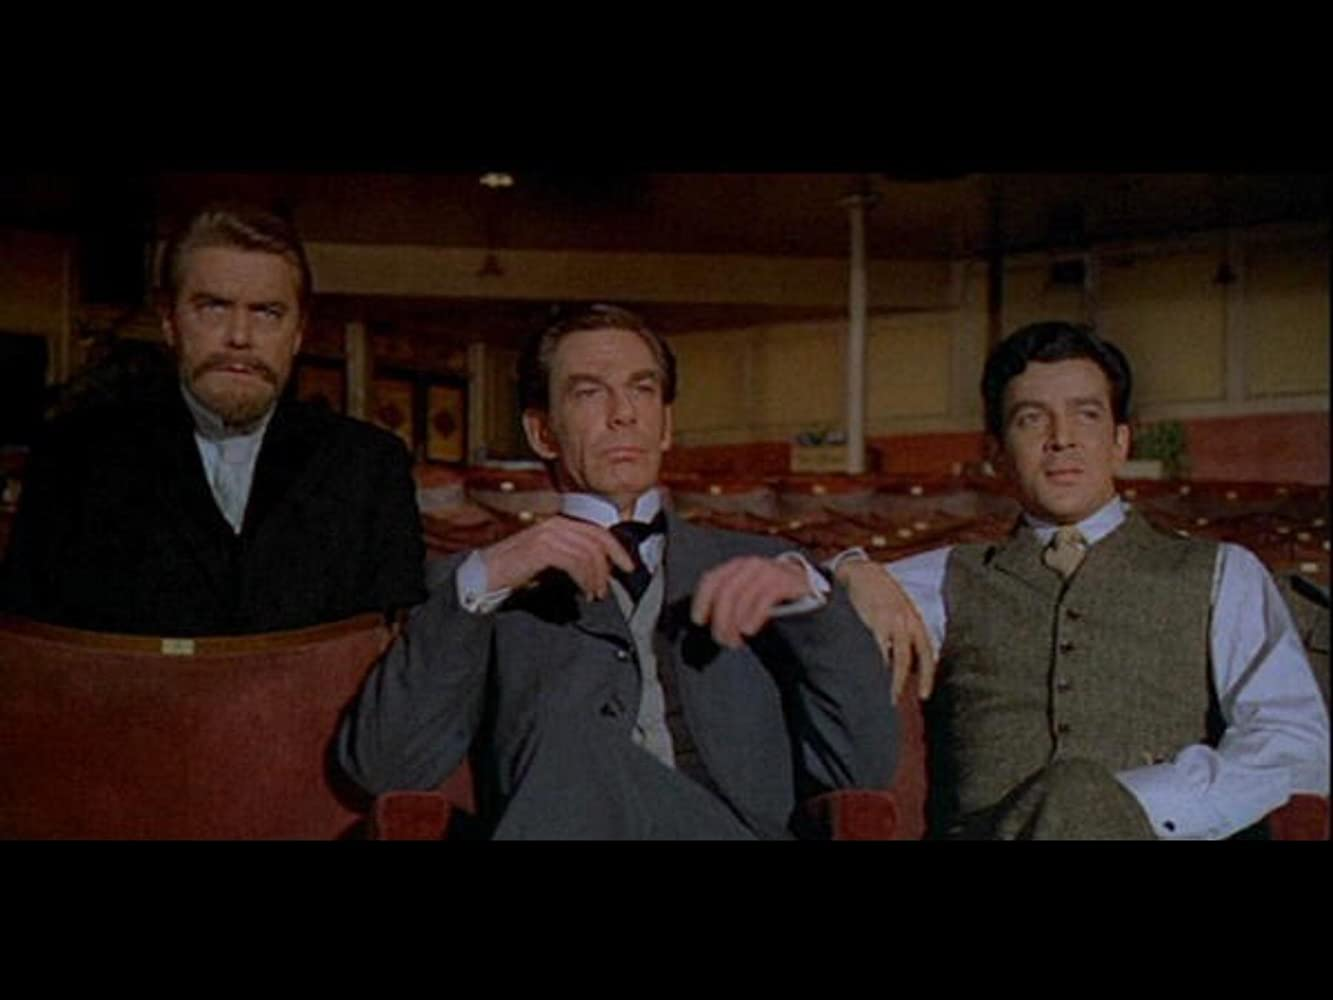 Michael Gough, Edward de Souza, and Thorley Walters in The Phantom of the Opera (1962)